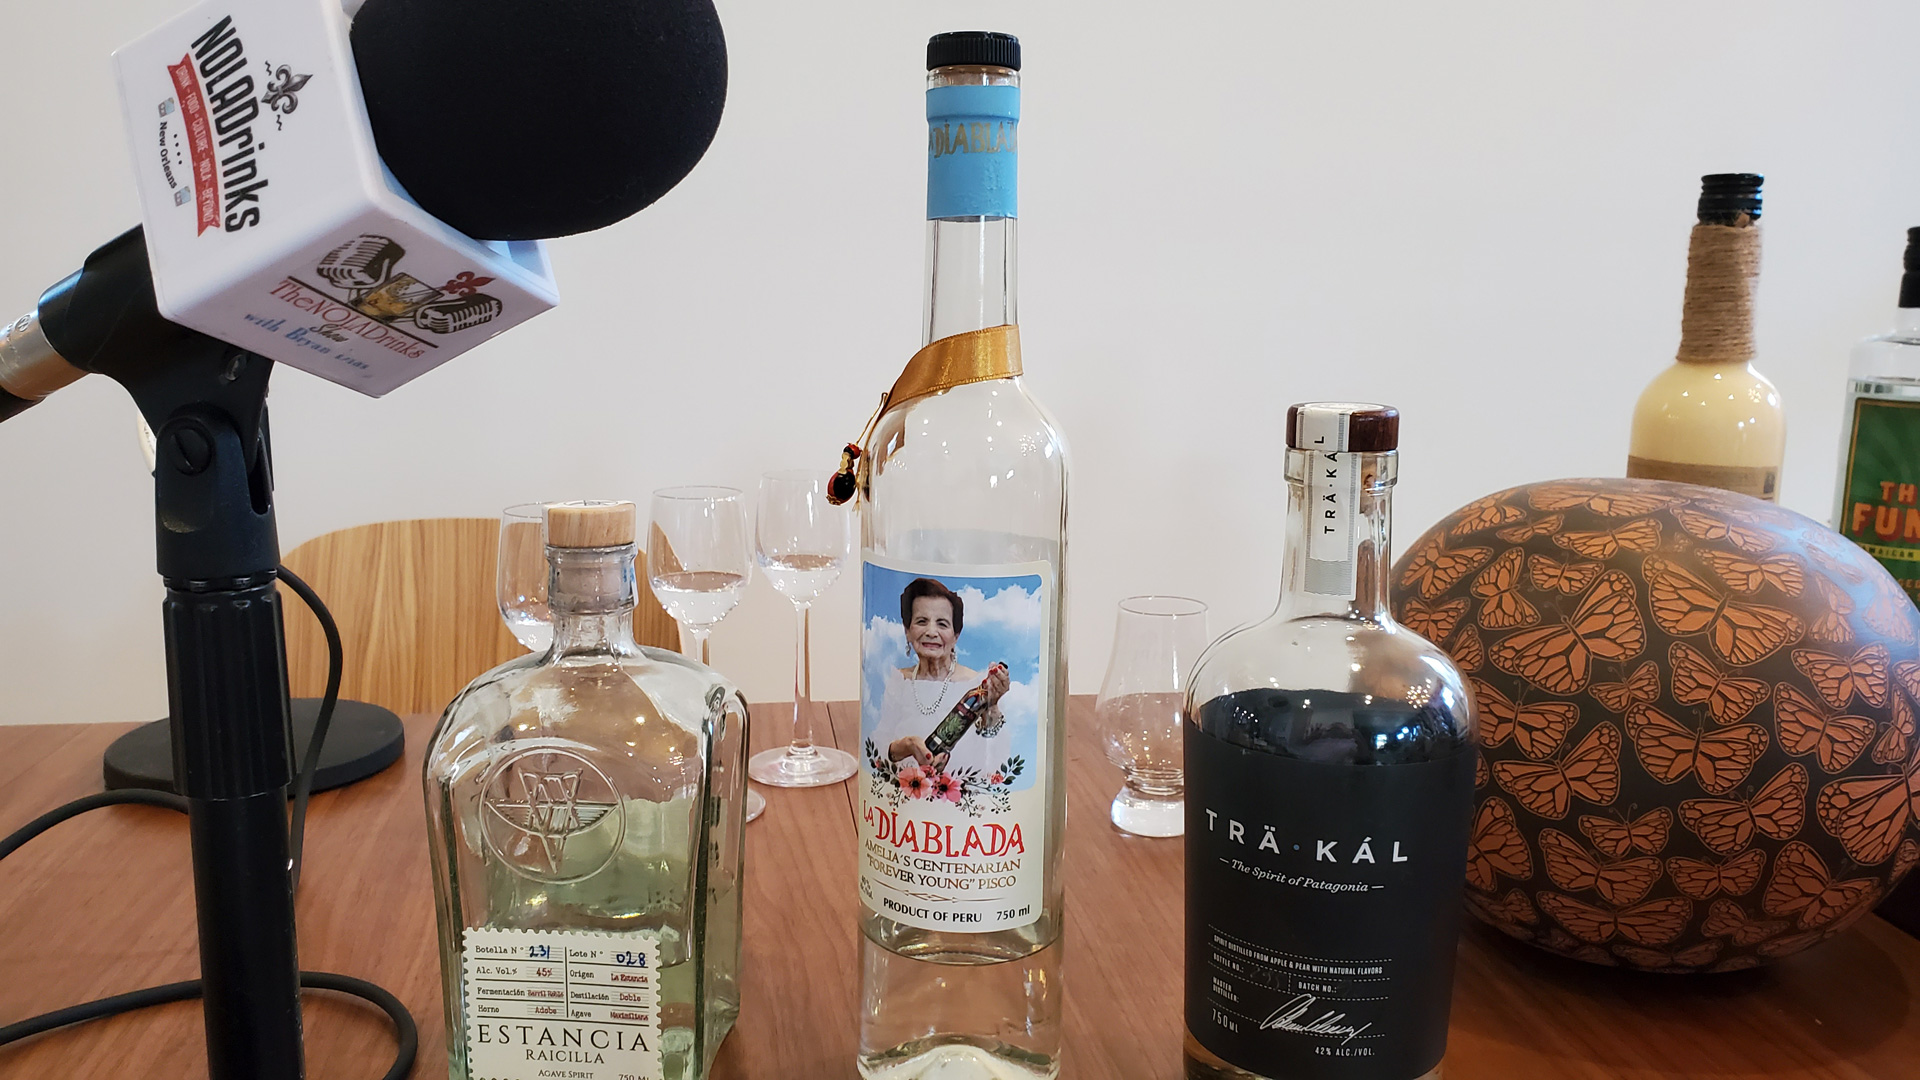 NOLADrinks Show – Liquid Luggage and Spirits Brokering with PM Brokerage – May20Ep3 – Some spirits we sampled in Liquid Luggage #3 – Estancia Racilla, Macchu Pisco La Diablada, and Träkál.